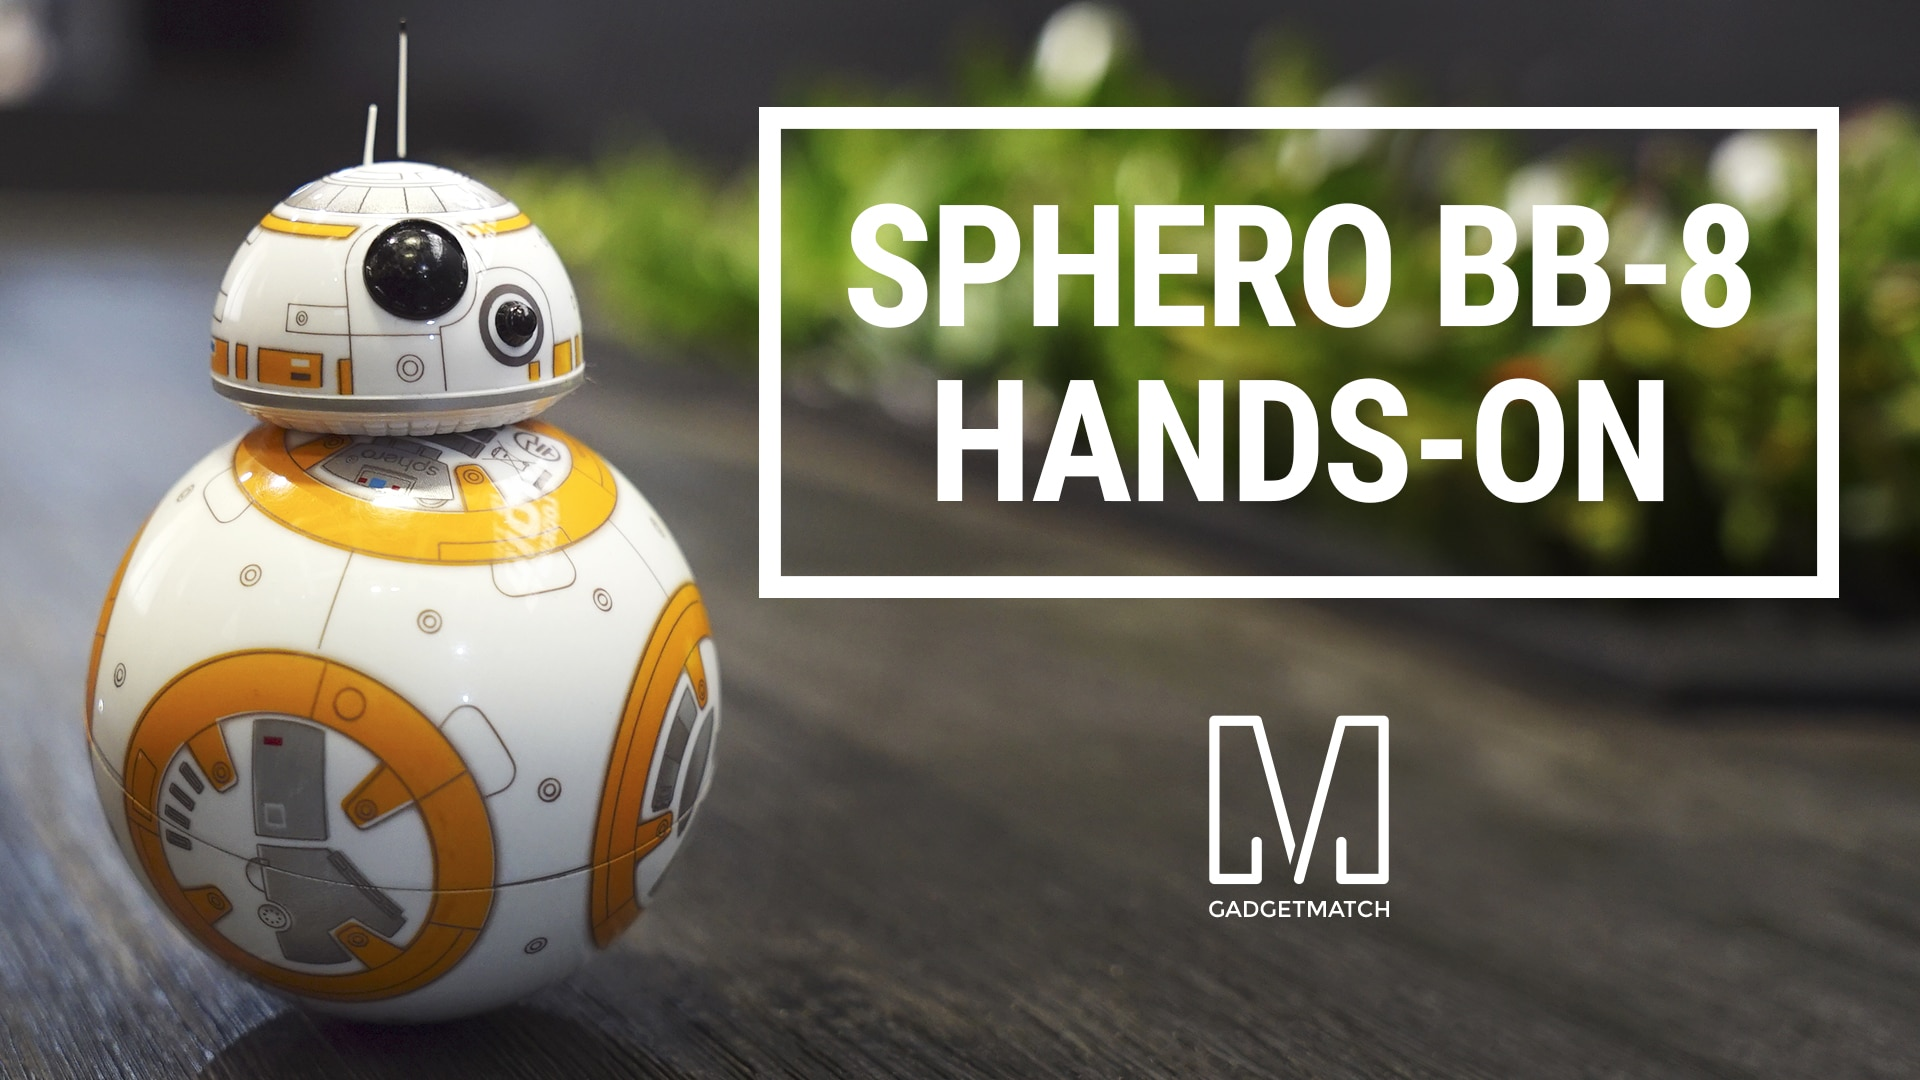 Bb 8 Droid By Sphero Gadgetmatch Net